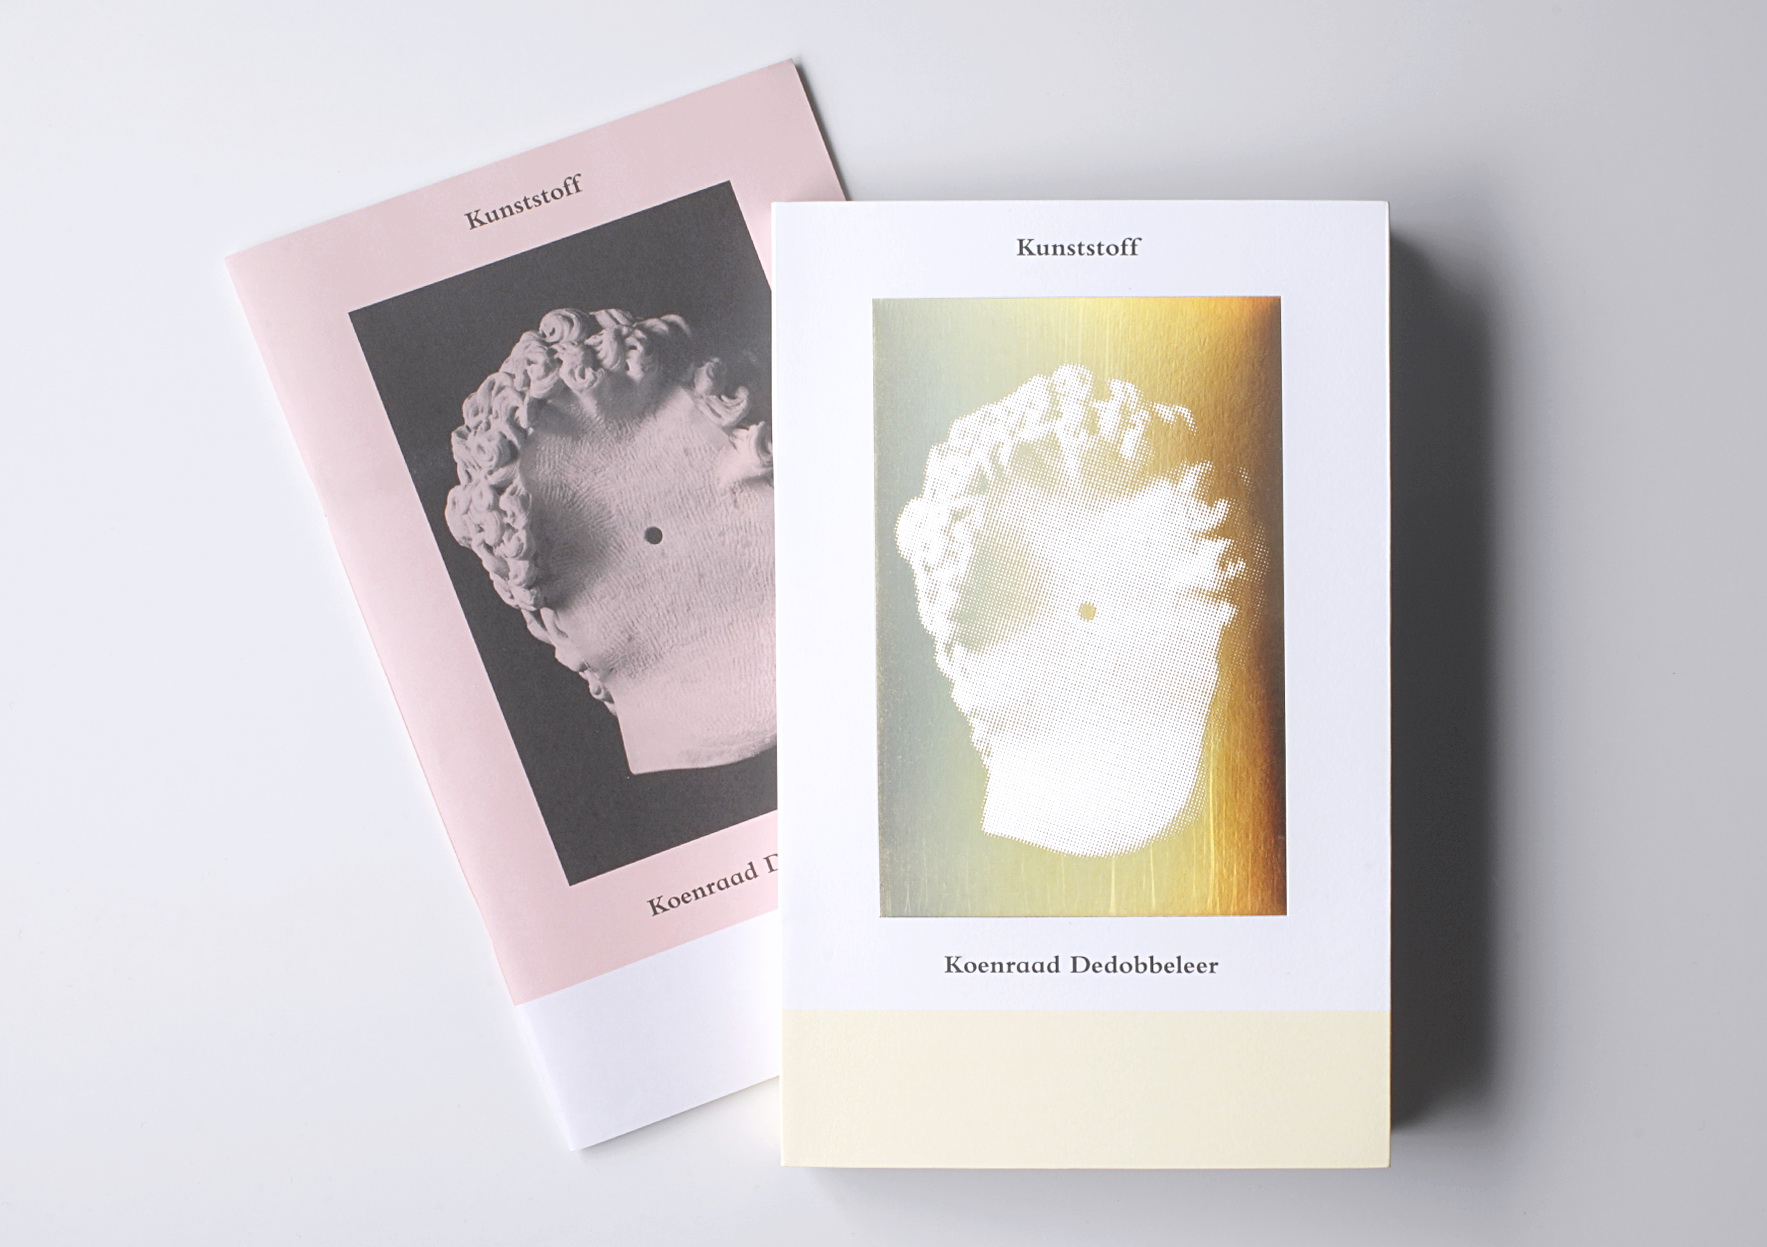 | Kunststoff – Gallery of Material Culture | ProjecteSD